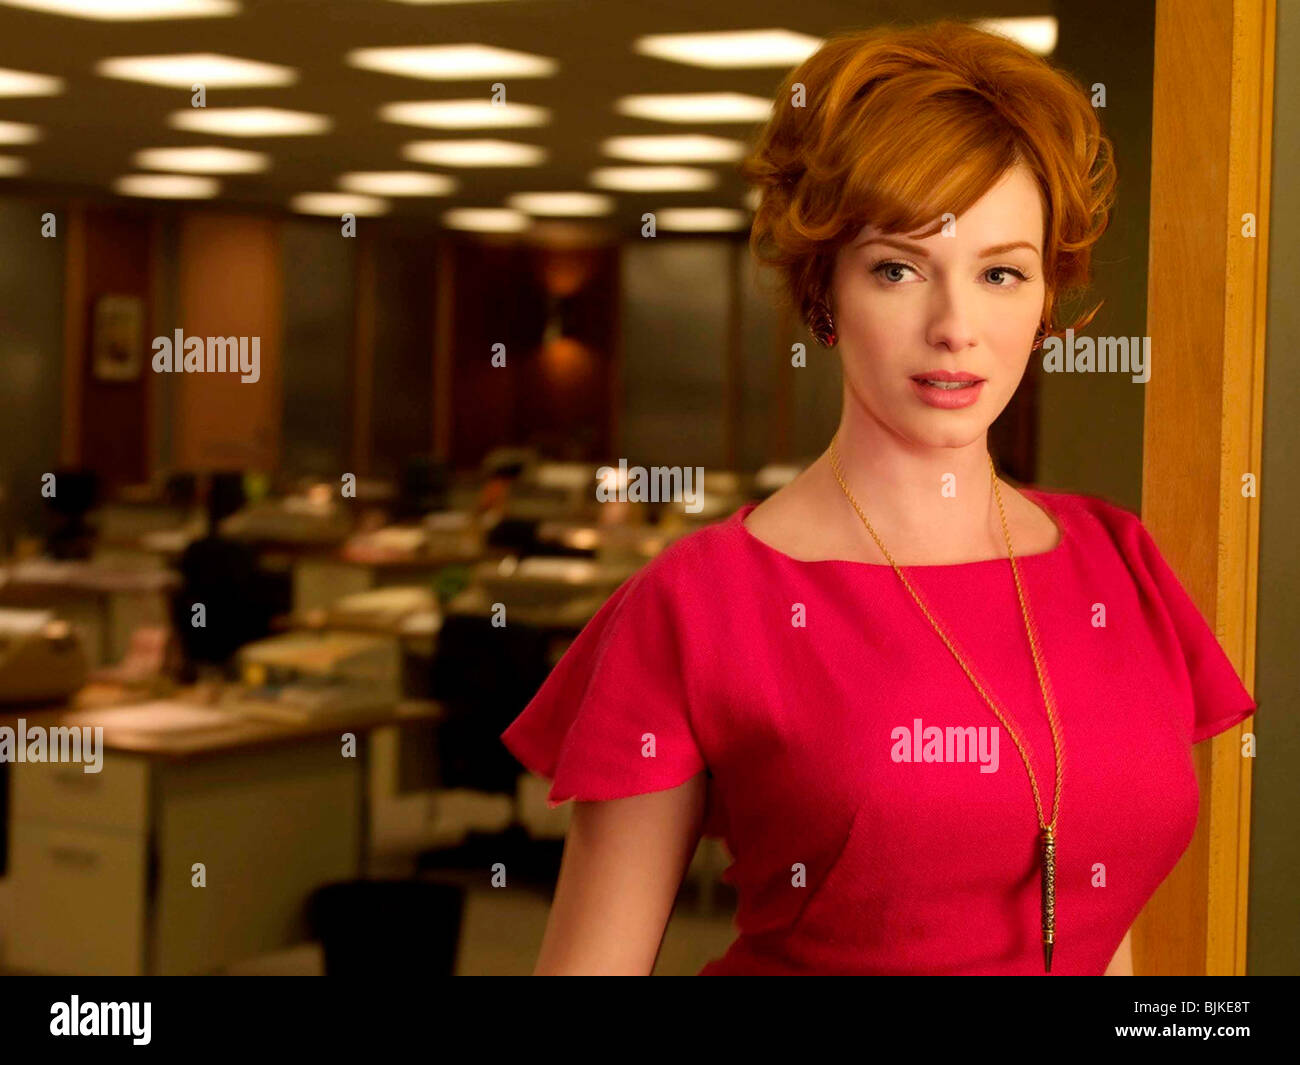 MAD MEN (TV) (2007) CHRISTINA HENDRICKS 002 - Stock Image